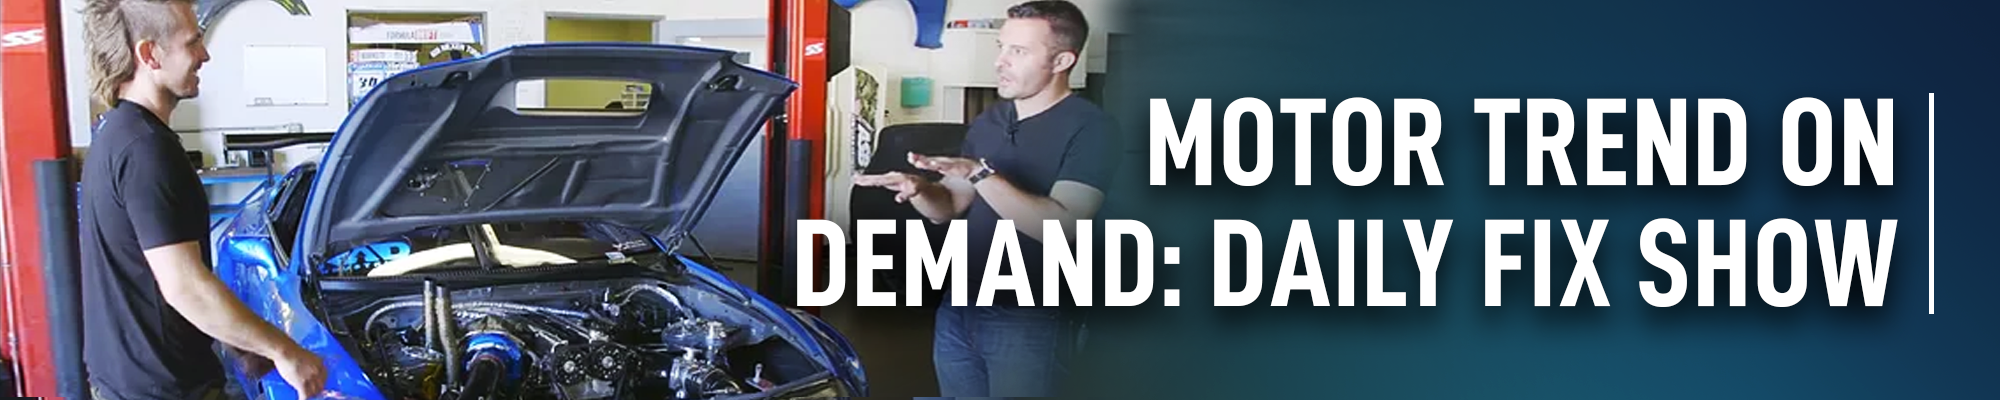 MOTOR TREND On Demand: Daily Fix Show